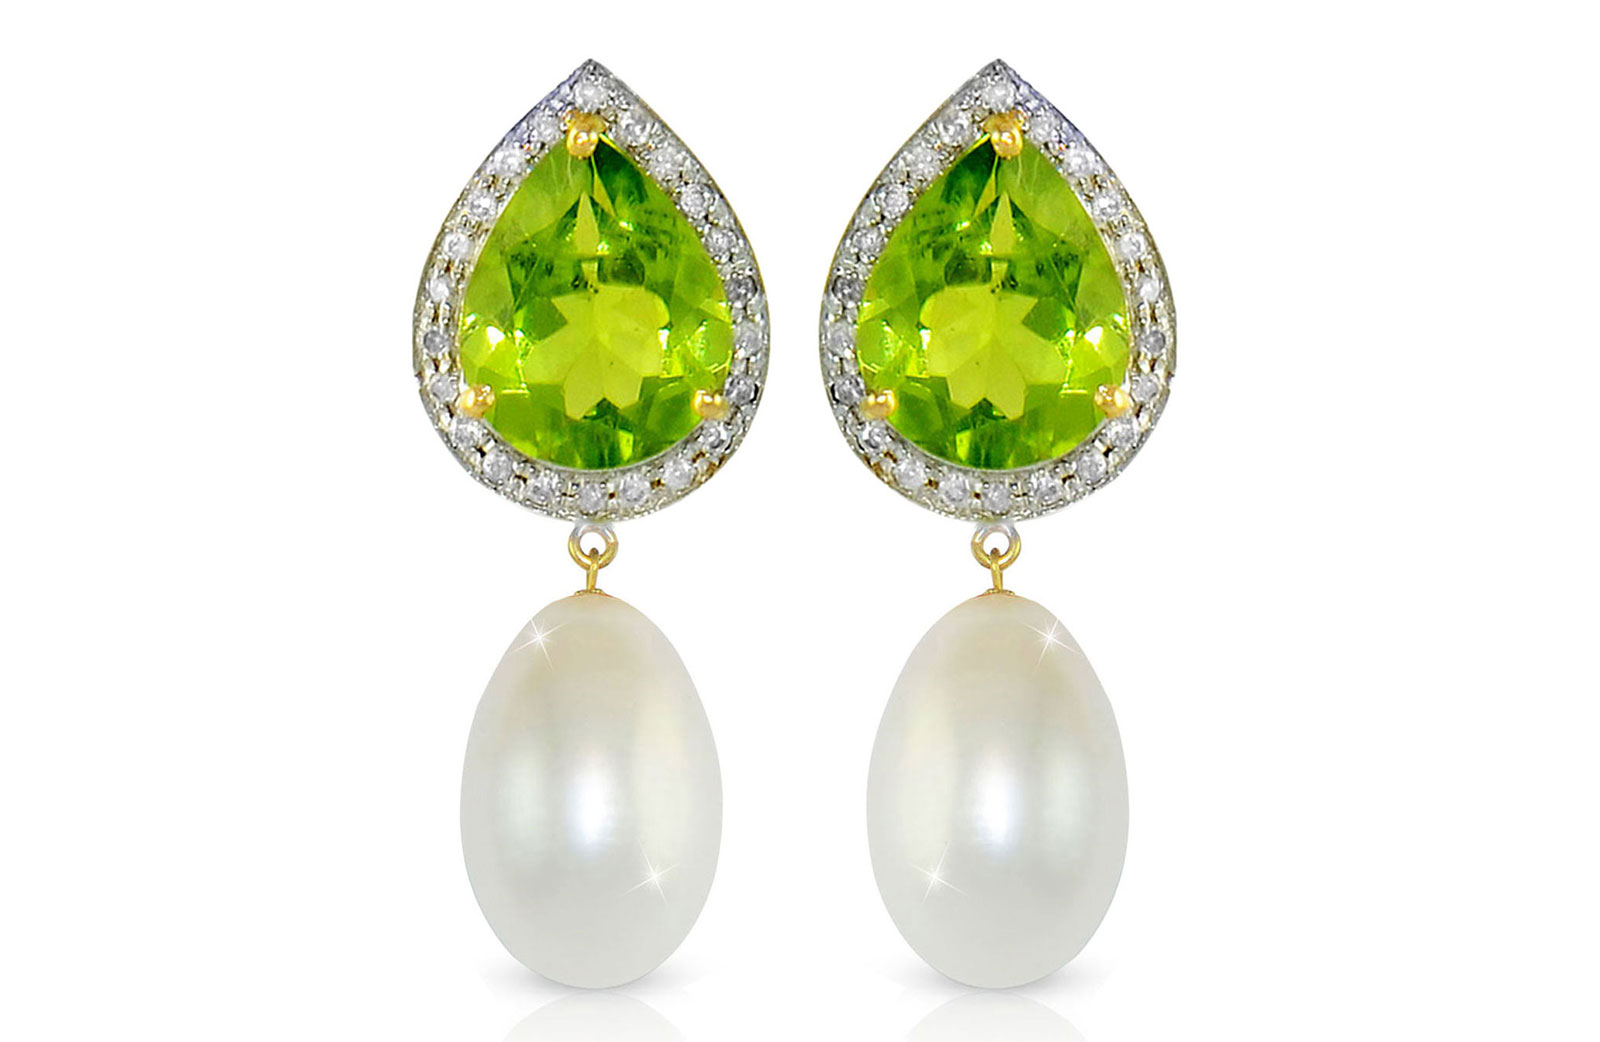 Vera Perla 18K Gold 0.24ct Diamonds, Peridot and 13mm White Pearl Earrings